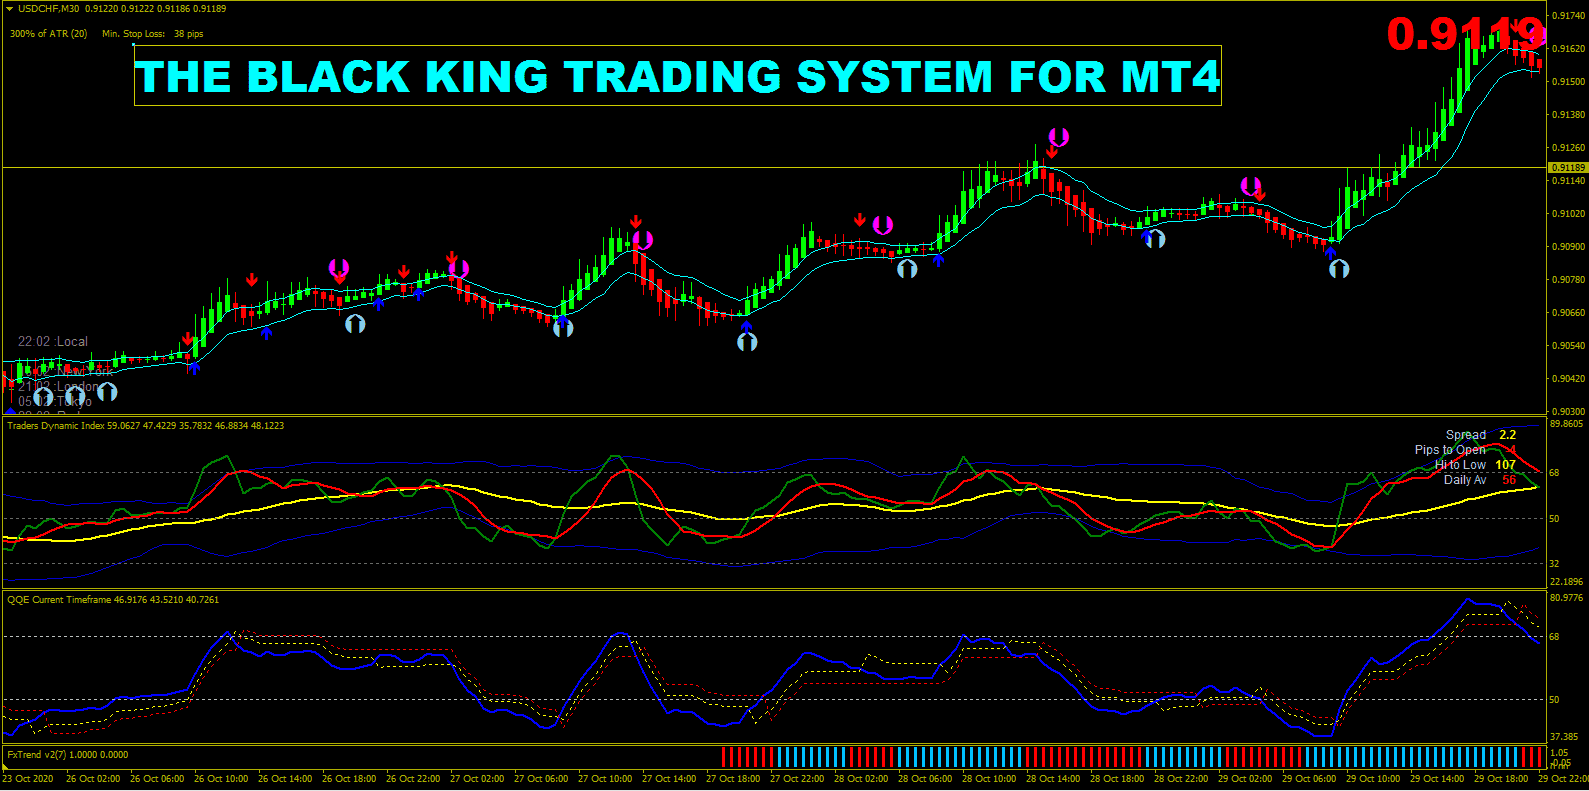 Black King Trading System For MT4